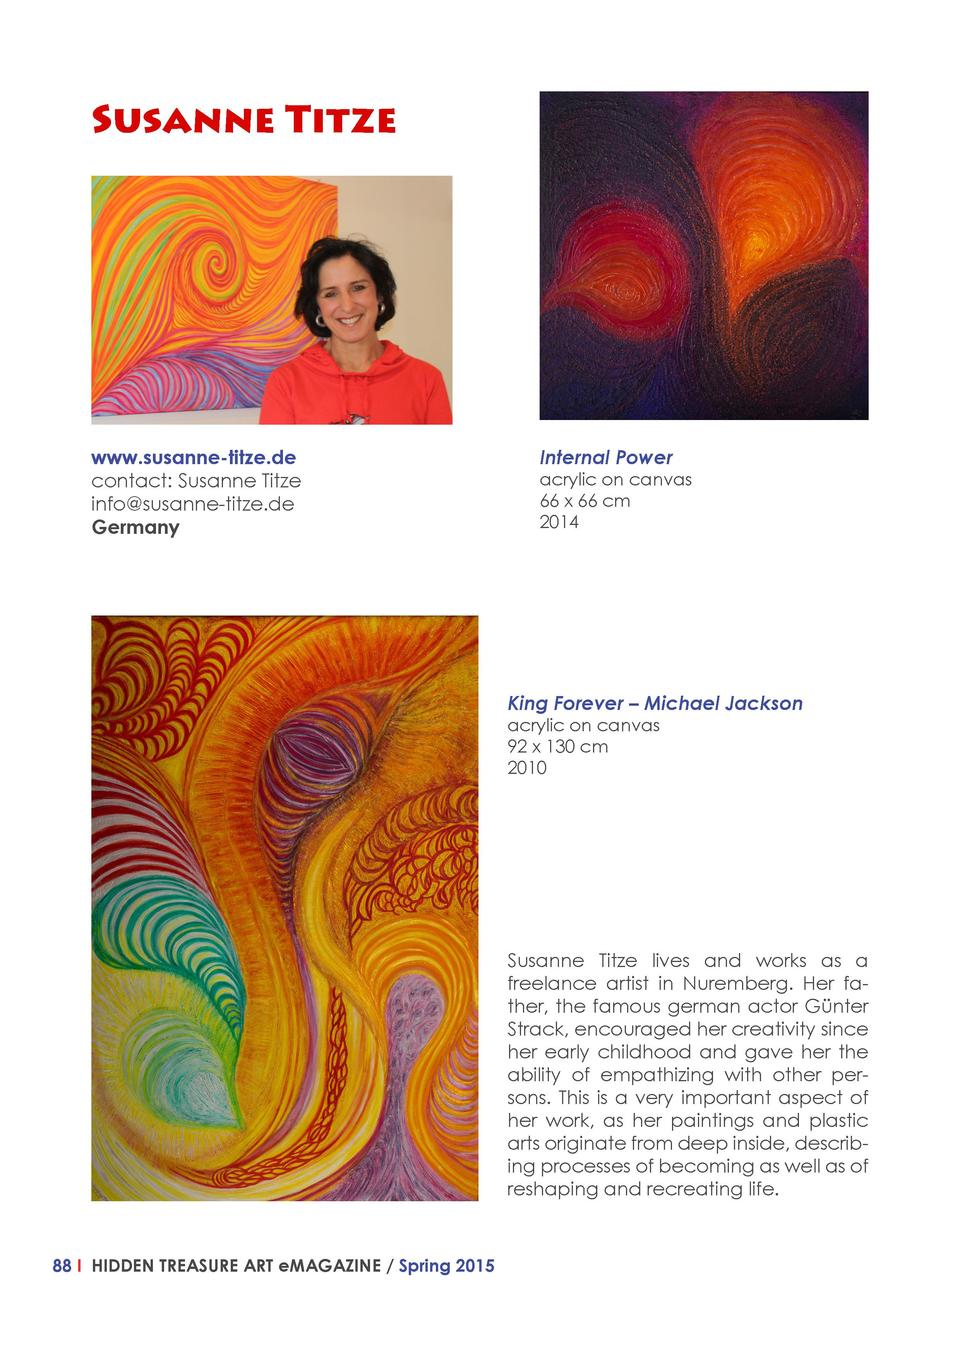 Susanne Titze  www.susanne-titze.de contact  Susanne Titze info susanne-titze.de Germany  Internal Power   acrylic on canv...